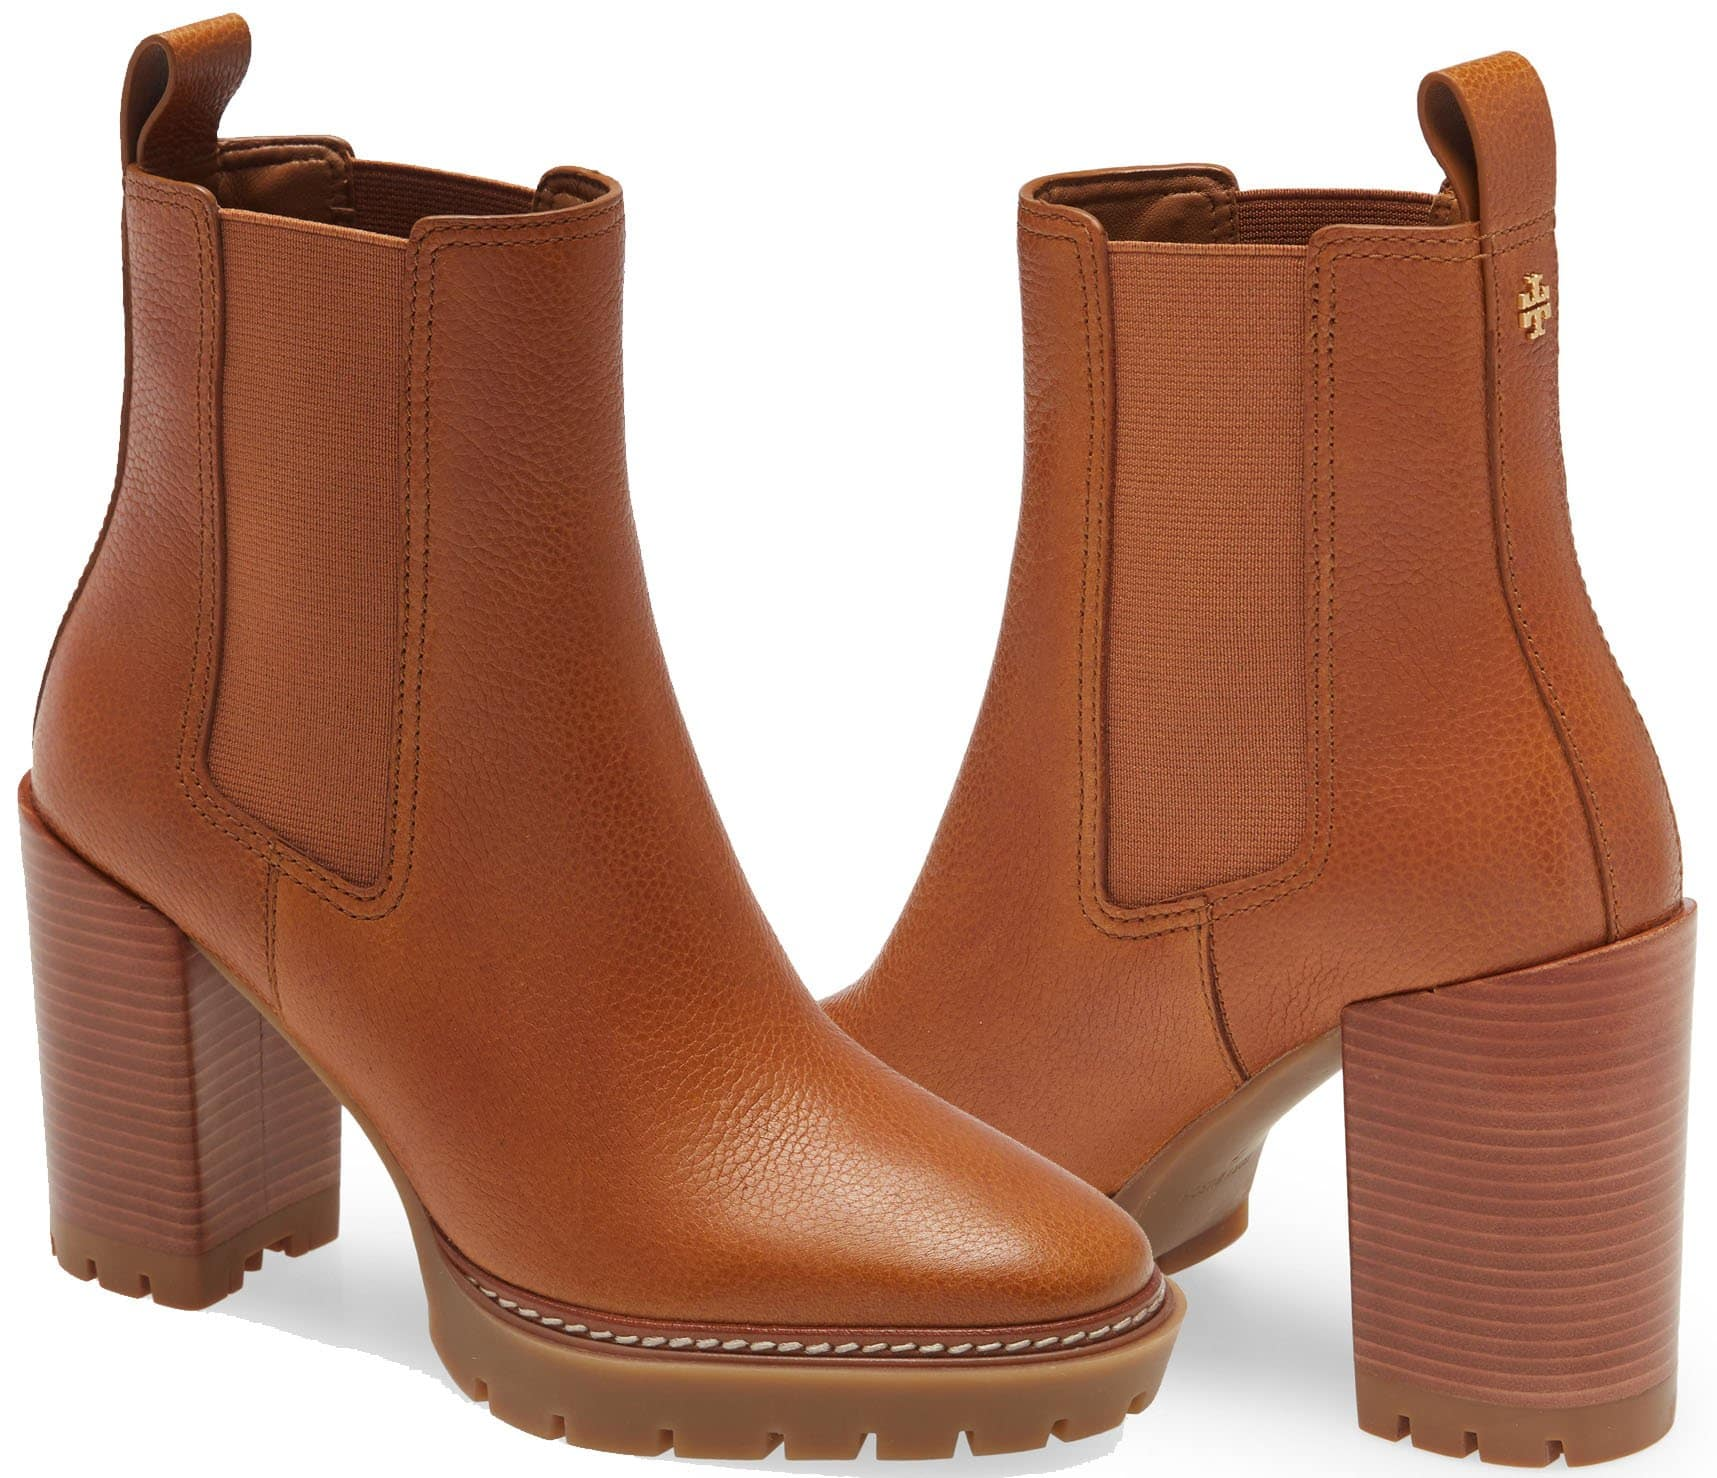 A classic Chelsea-style boot elevated on a block heel and treaded sole